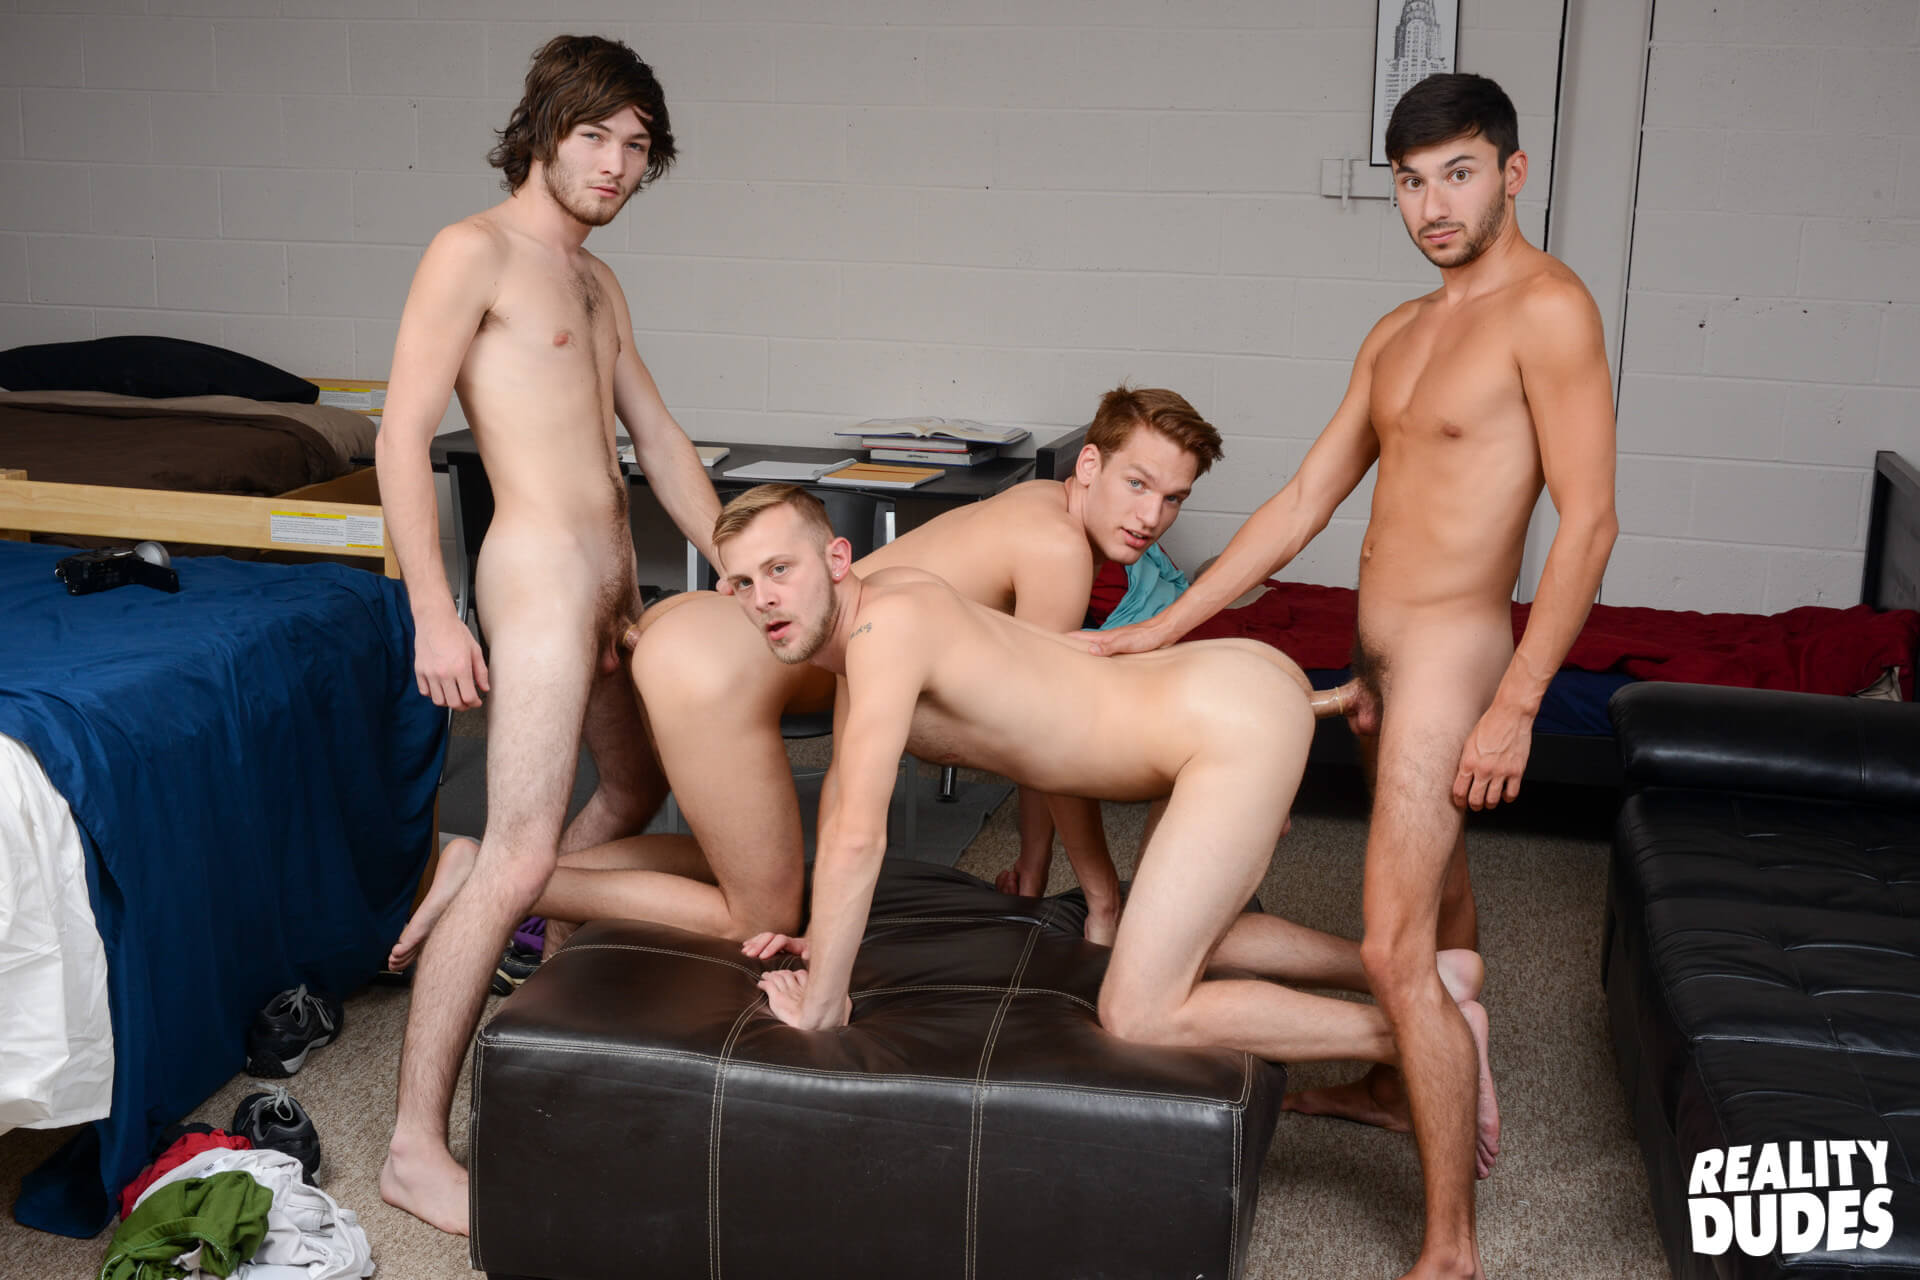 reality dudes dick dorm heavenly dick caleb rules chandler scott scott demarco zack grayson gay porn blog image 47